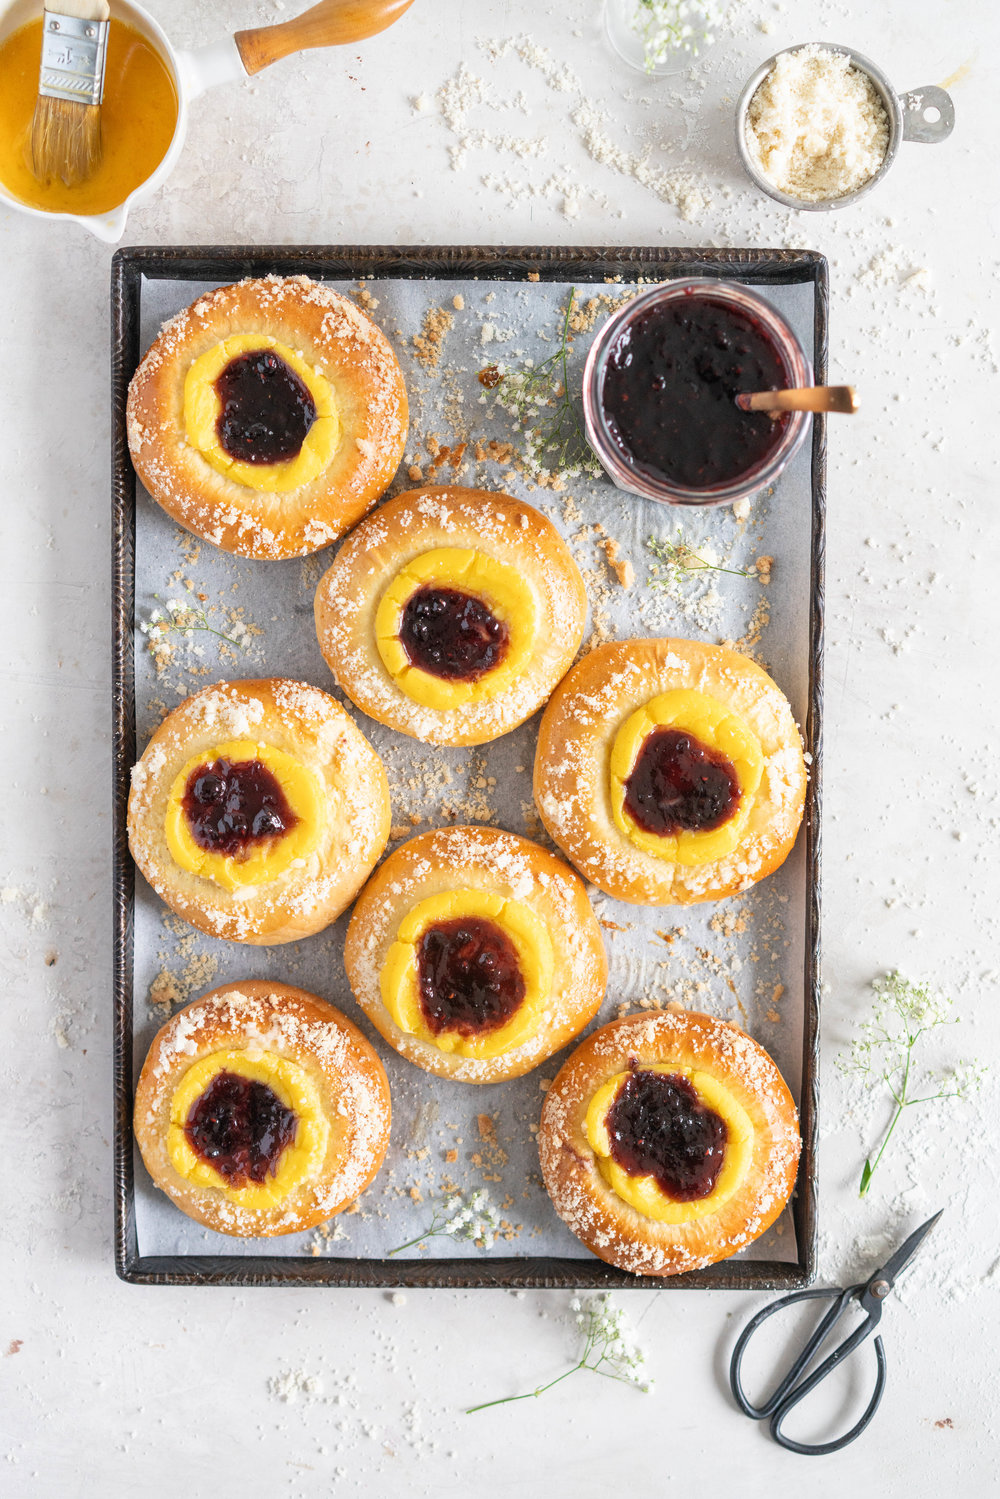 Custard Brioche Buns with Bonne Maman Mixed Berry Preserves and Vanilla bean Streusel. Light and fluffy brioche rounds are filled with a vanilla bean custard, then finished with a swirl of Bonne Maman Mixed berry preserves, and a sprinkle of vanilla bean streusel. These are perfect for a super easy but incredibly delicious brunch, as everything can be prepared the night before, making assembling the next morning super easy. #brioche #custardbun #breakfastpastry